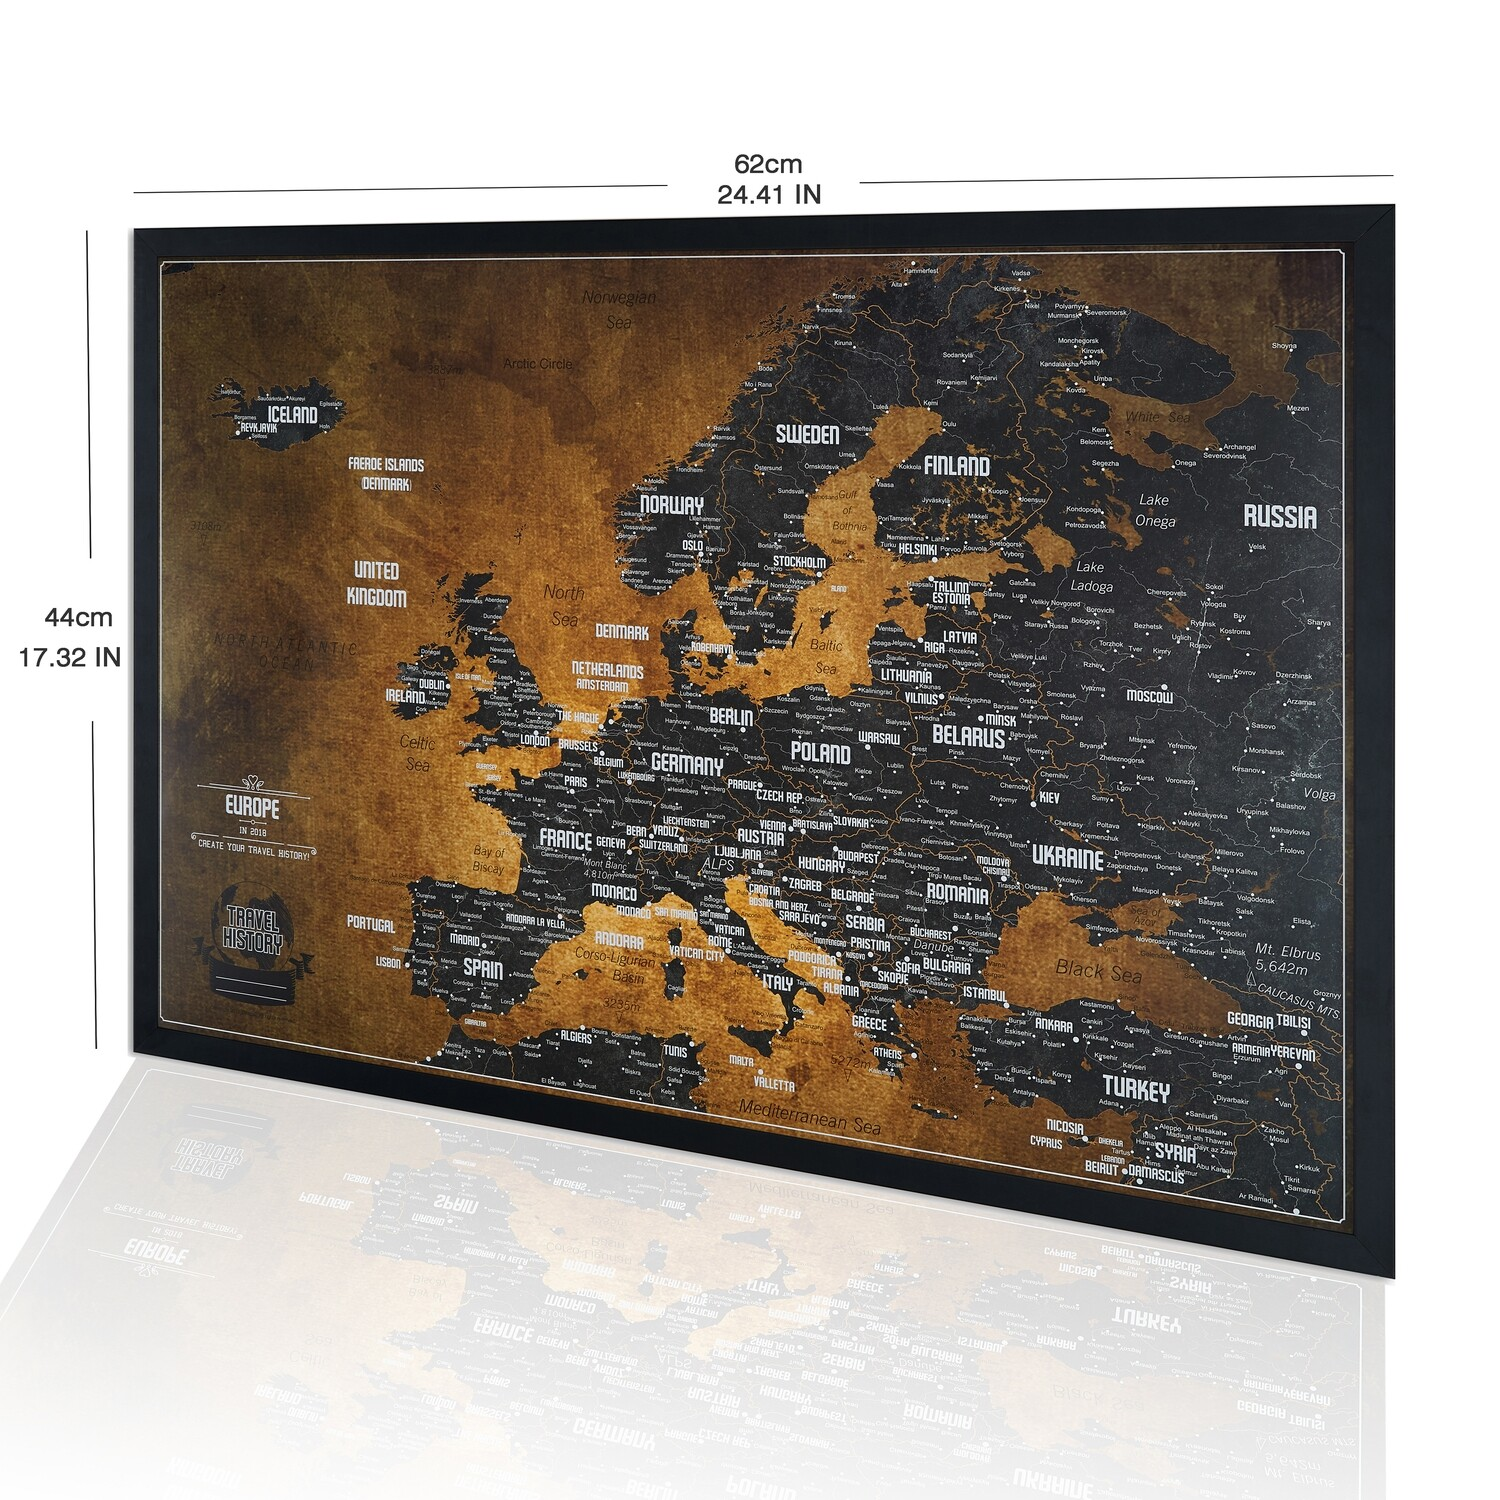 Europe Map Push Pin - Europe Map Wall Art - Includes 600 Biggest Cities - Explore Europe Map with Pins ready to hang - Push Pin Travel Map